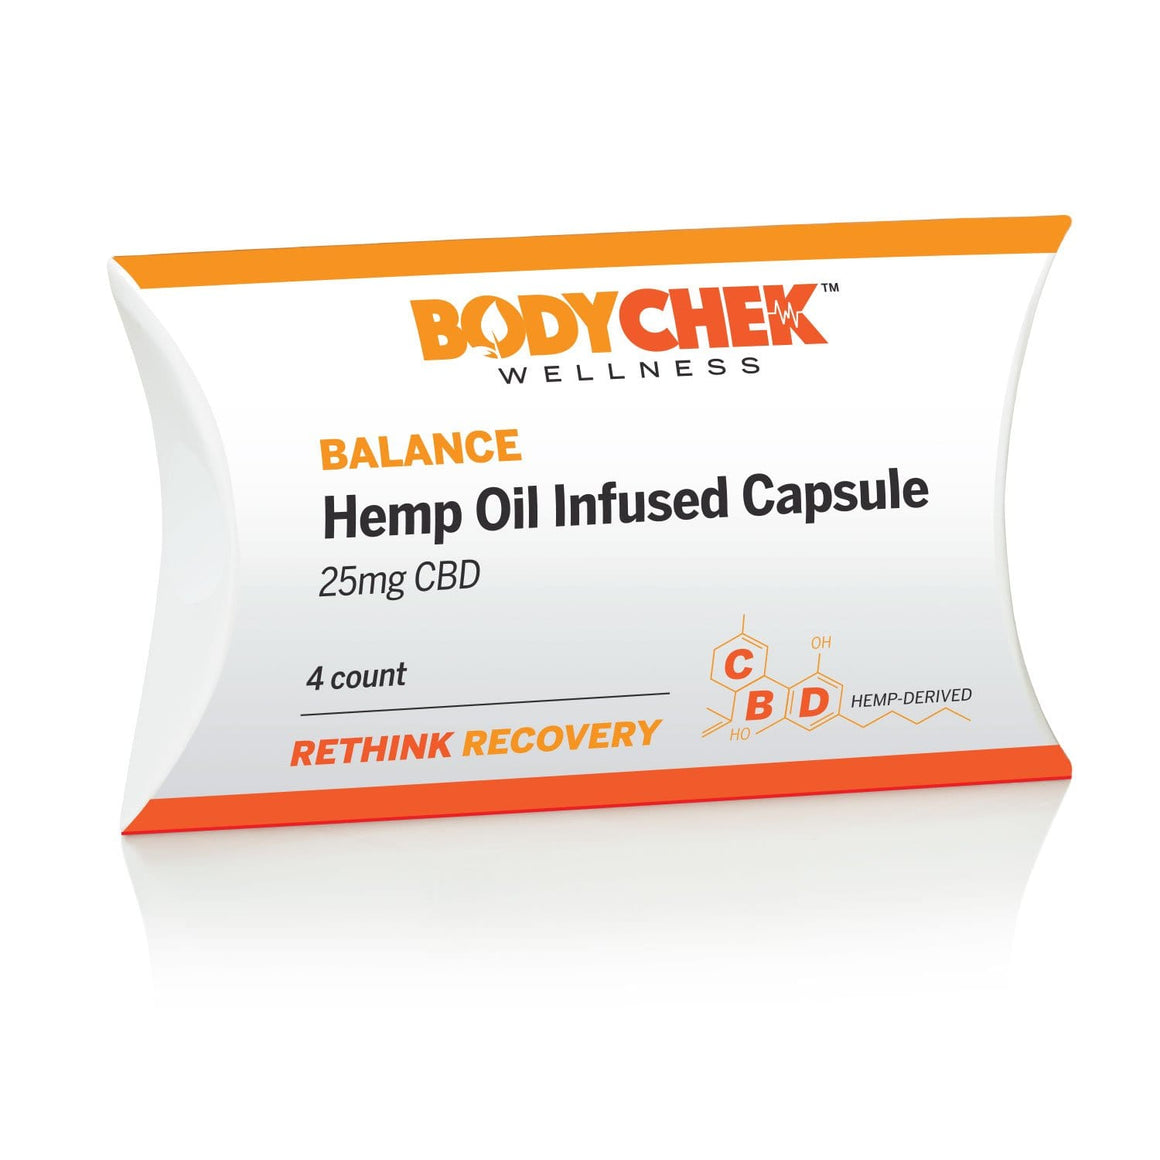 BALANCE Trial Size CBD Infused Capsules